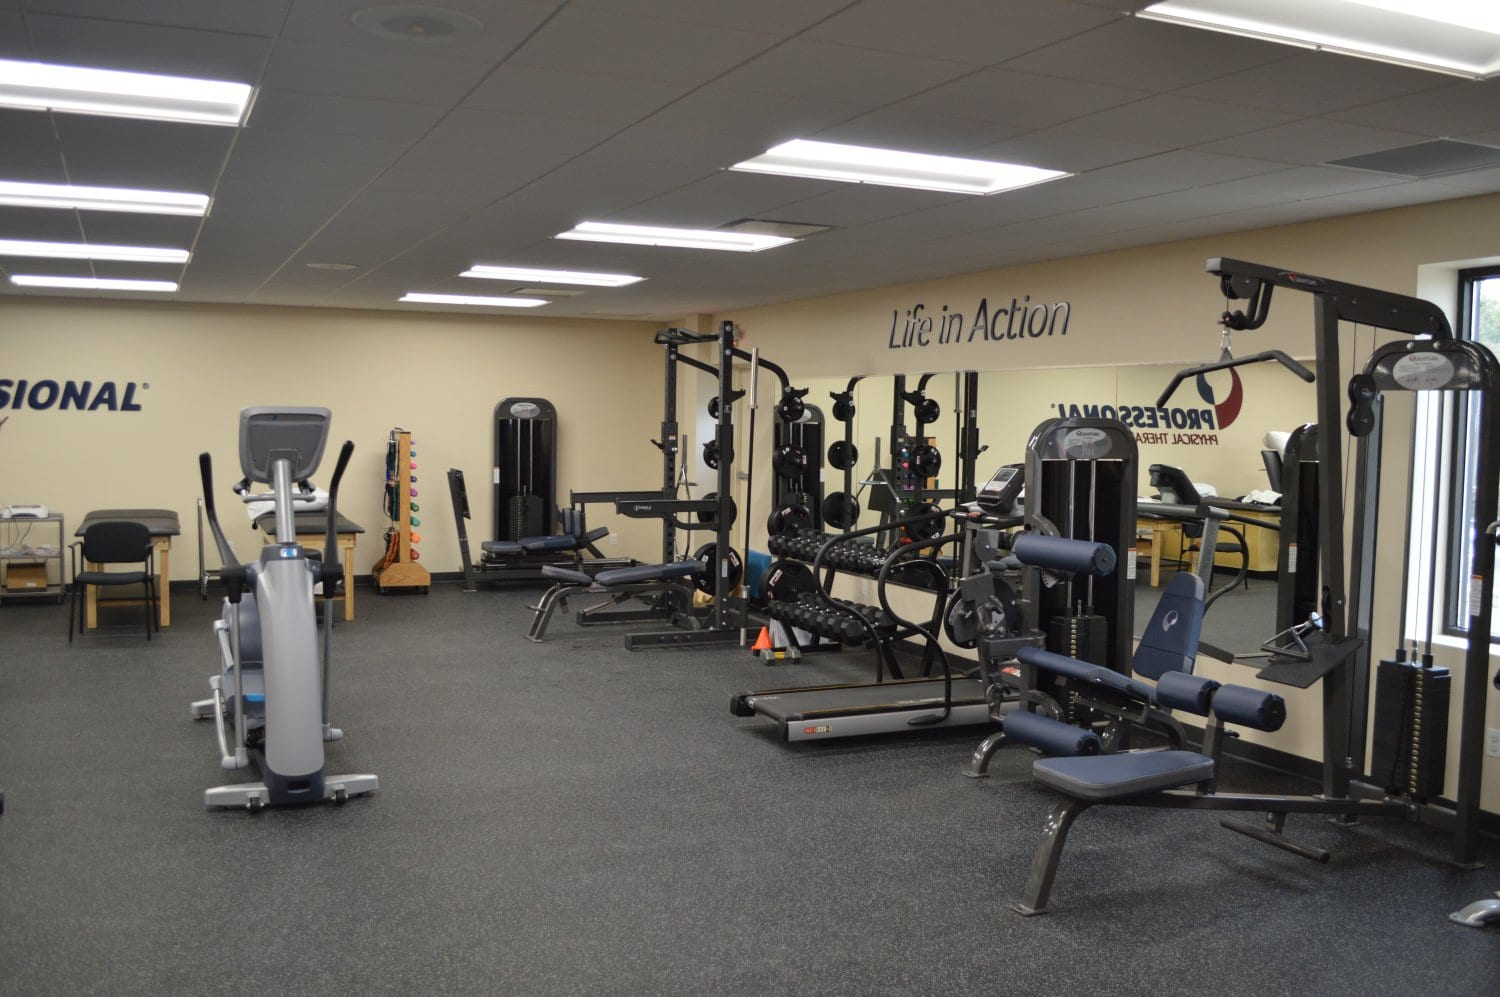 This is an image of the interior of our physical therapy clinic in Franklin Square, New York.